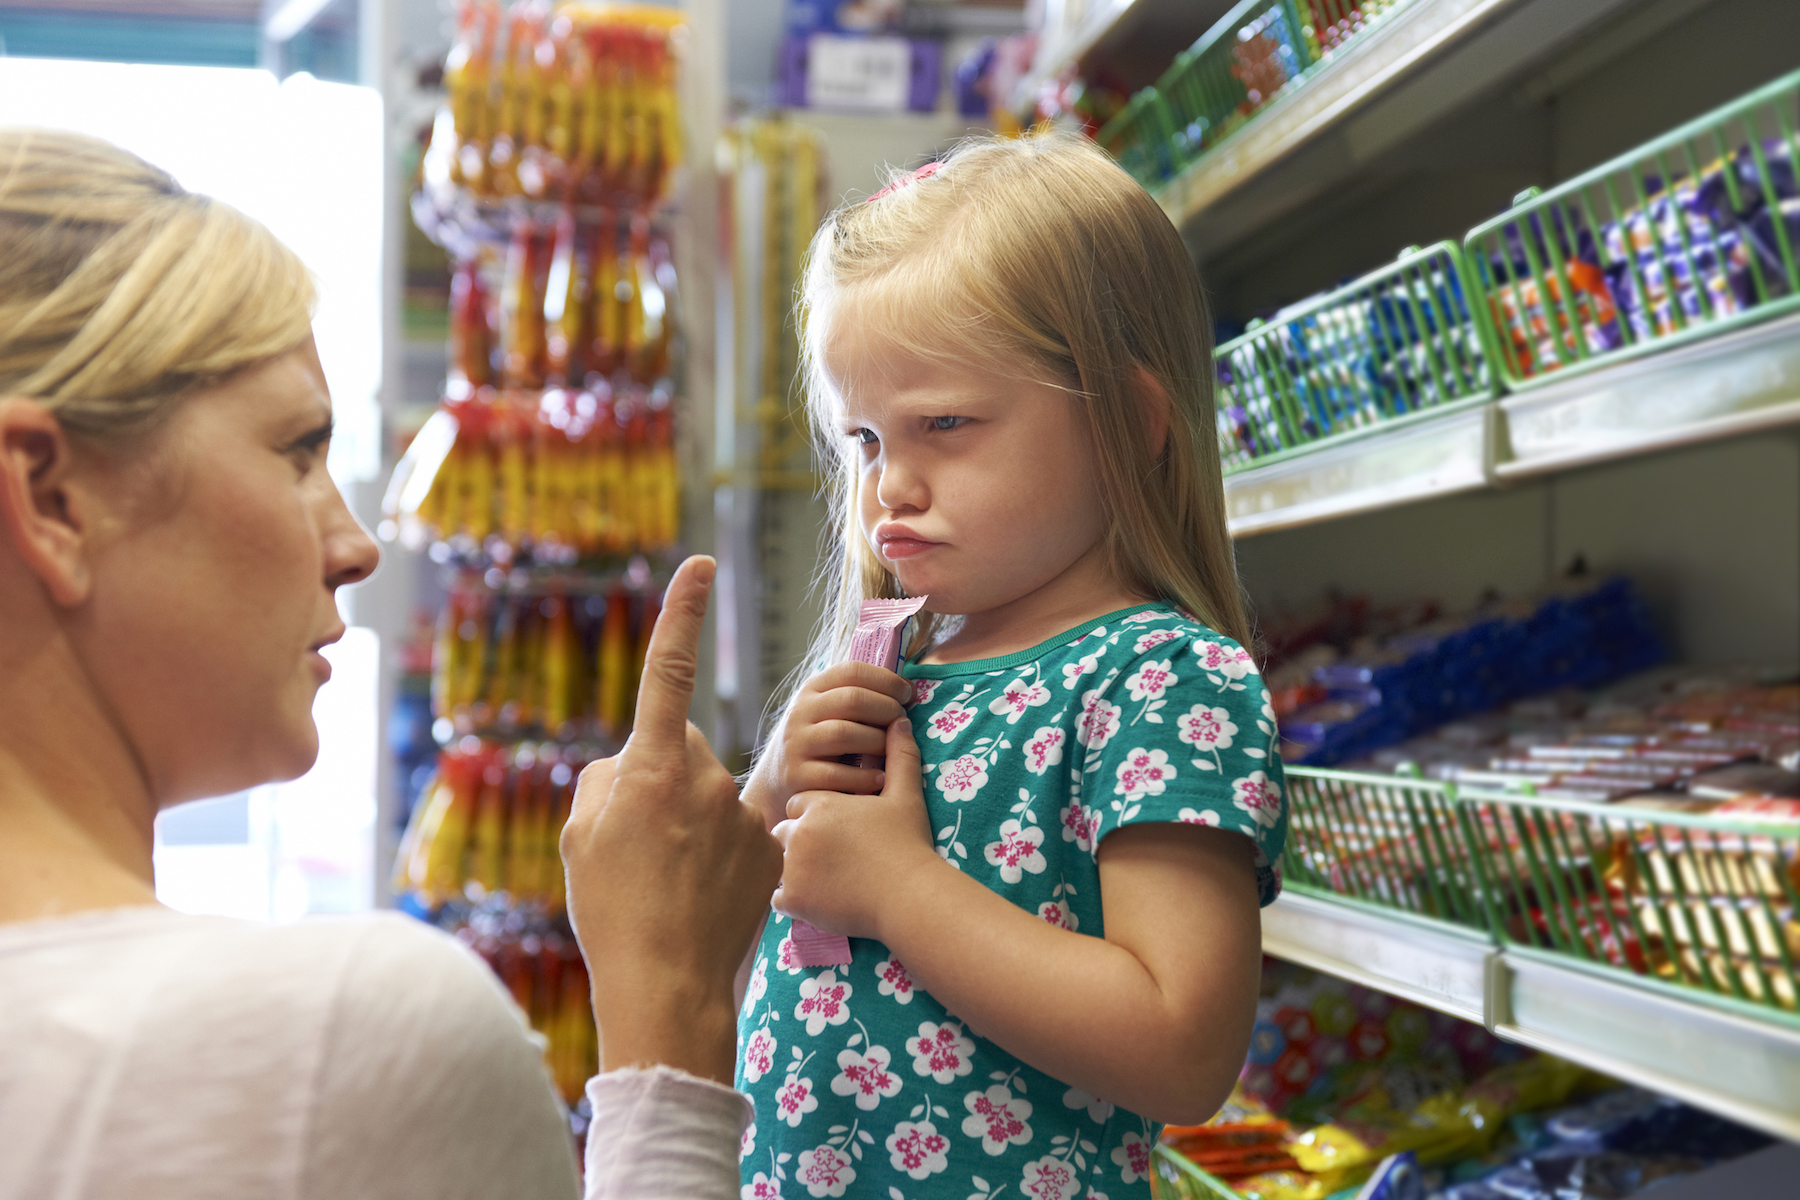 Woman disciplining girl in candy store